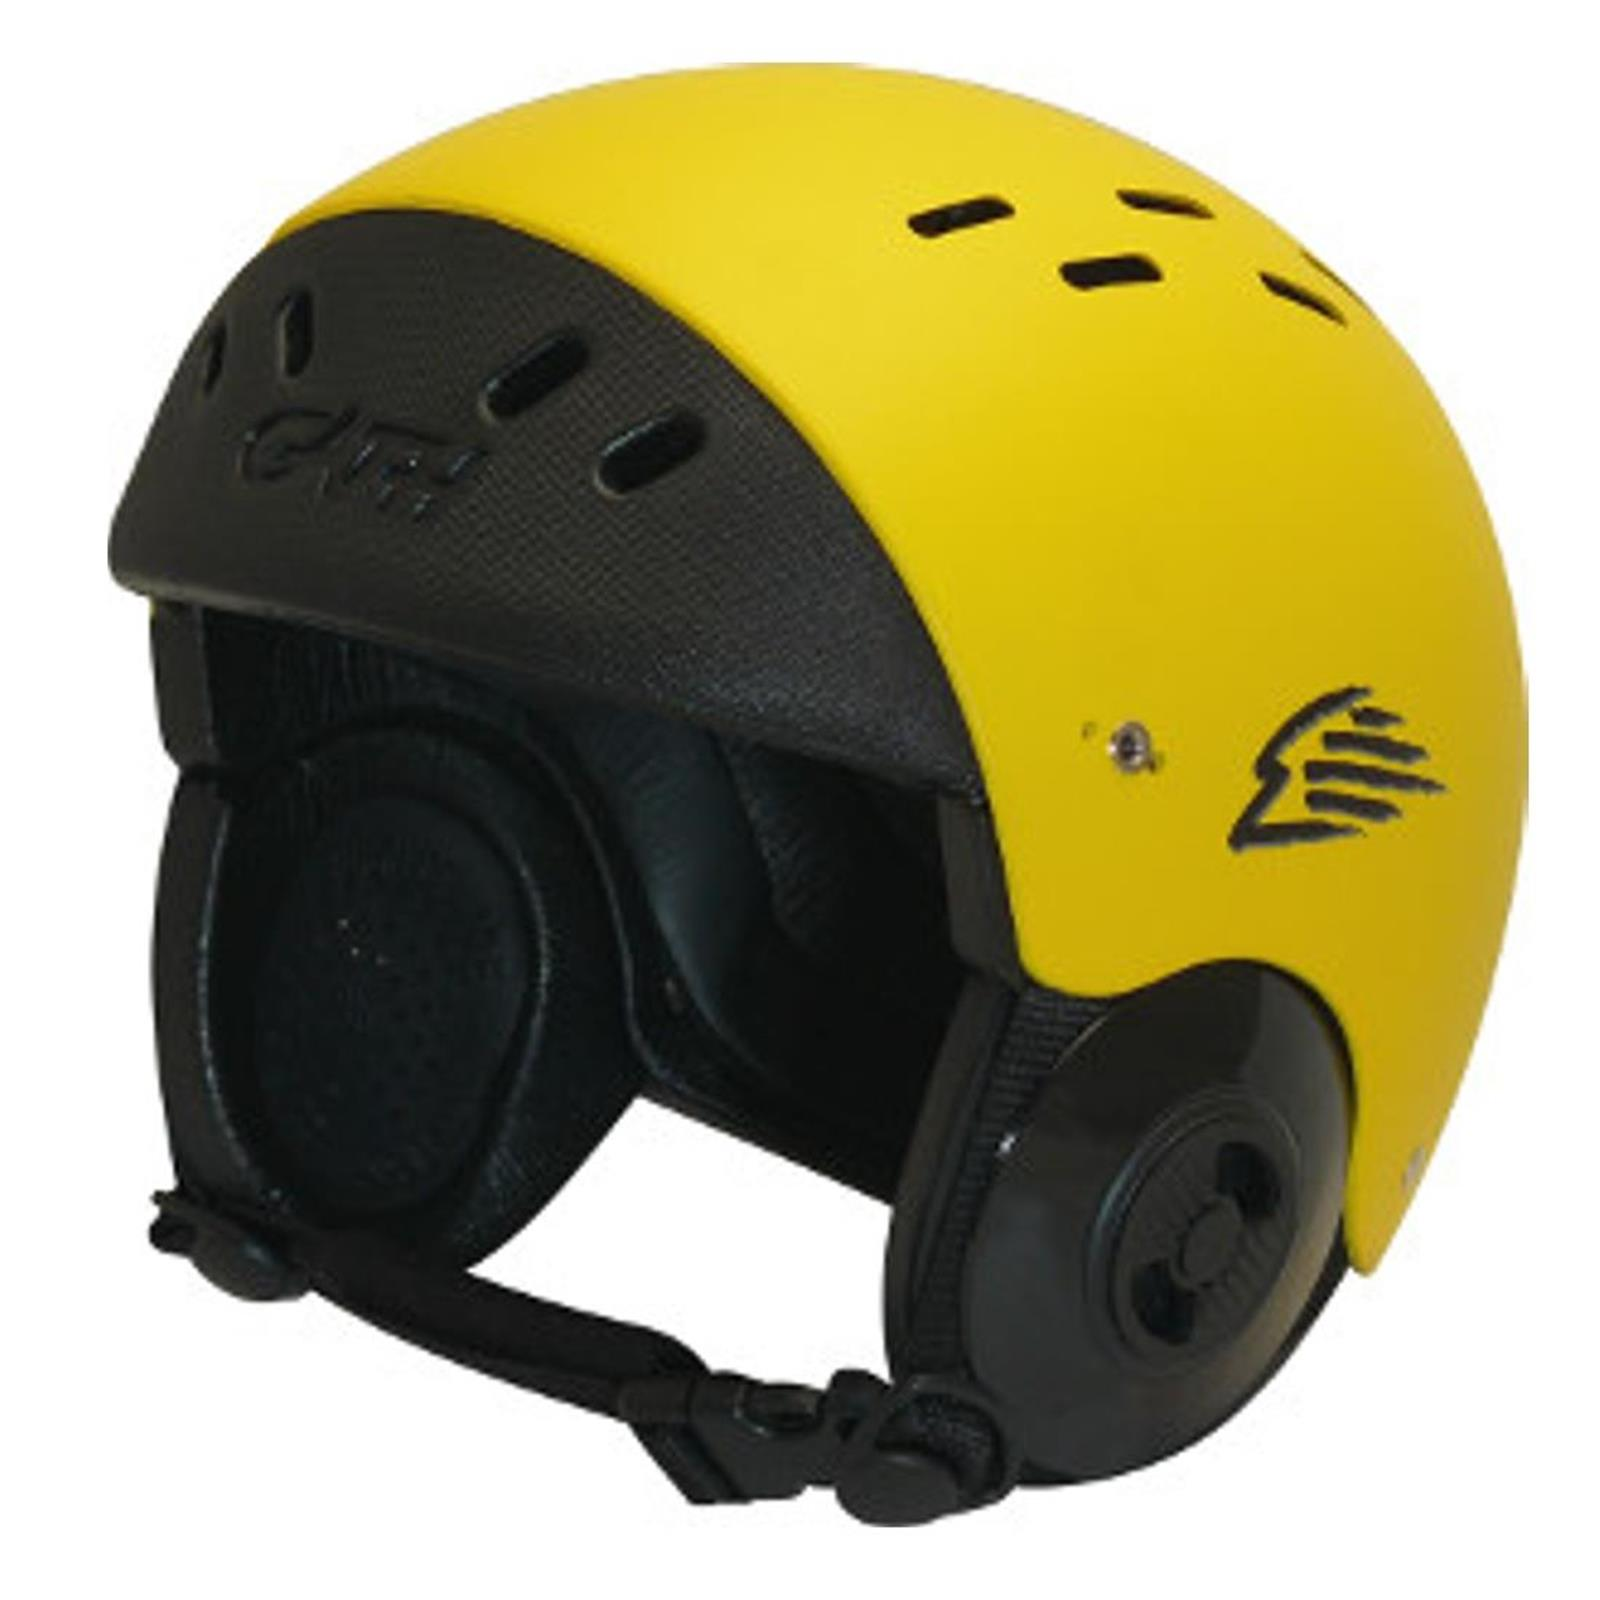 GATH Wassersport Helm SFC Convertible XL Gelb matt